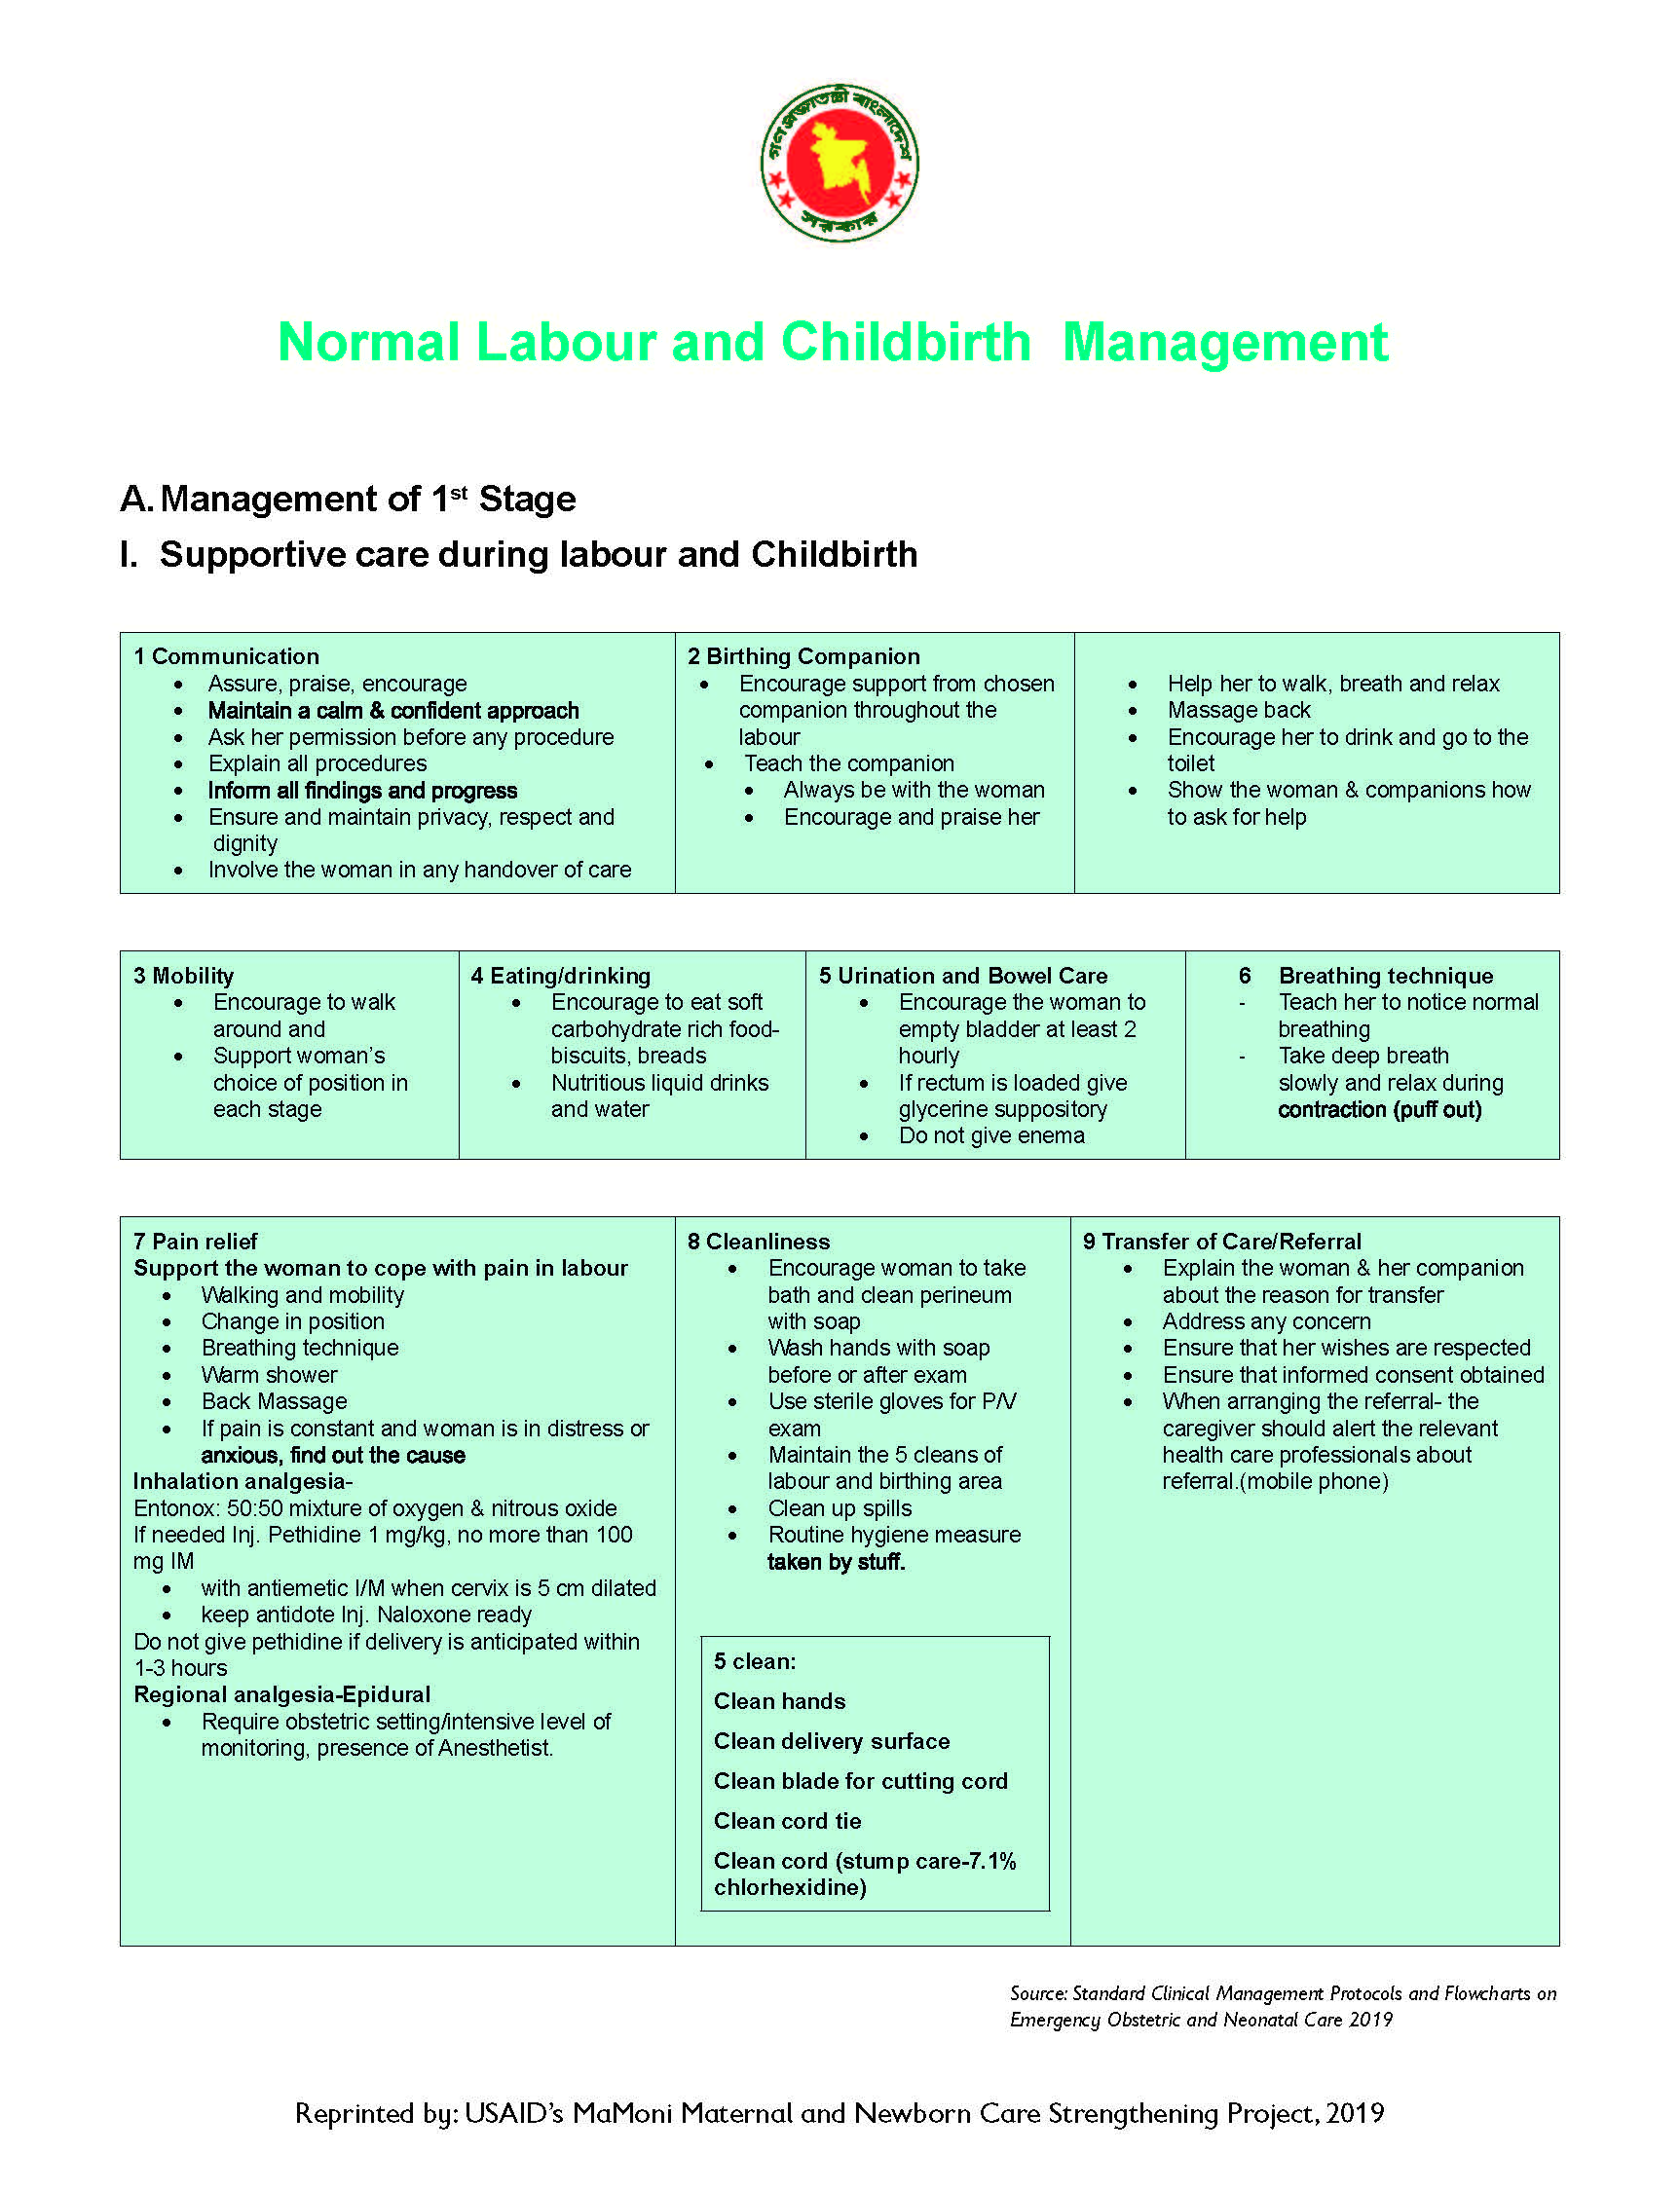 Normal Labor and Childbirth Management 2019